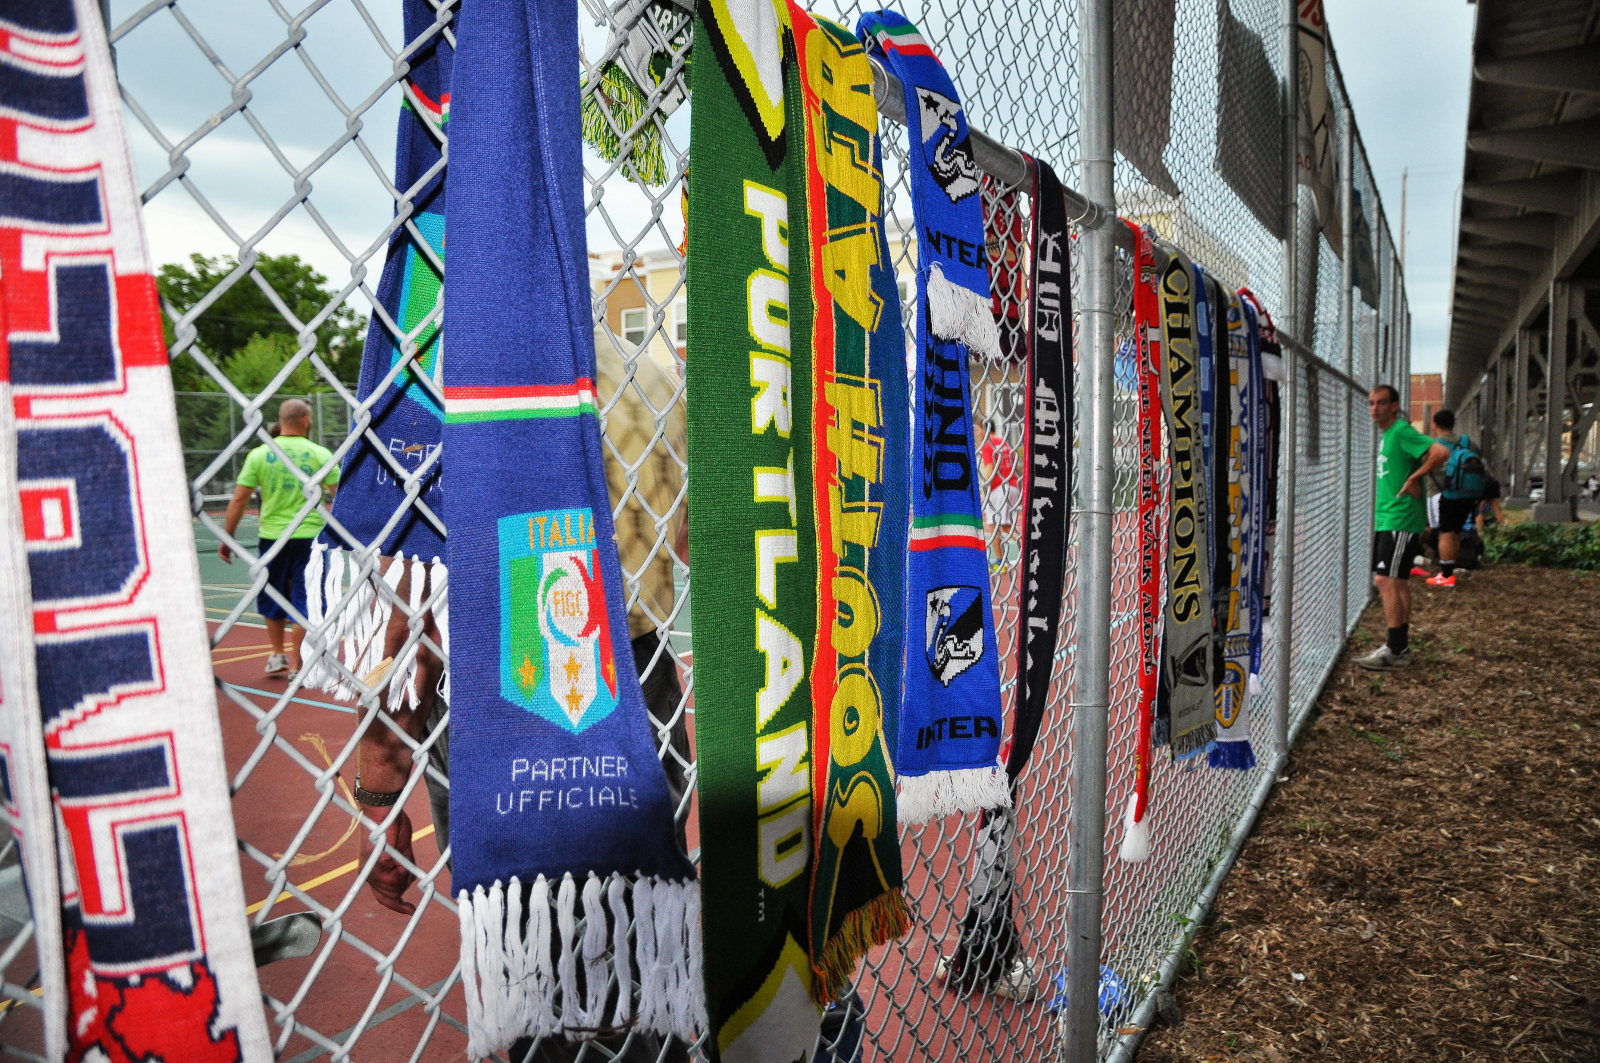 International scarves represented at SOCCERFEST, a 3-on-3 soccer tournament held at the Silver City Townhomes Sports Court by the Milwaueke Soccer Development Group.